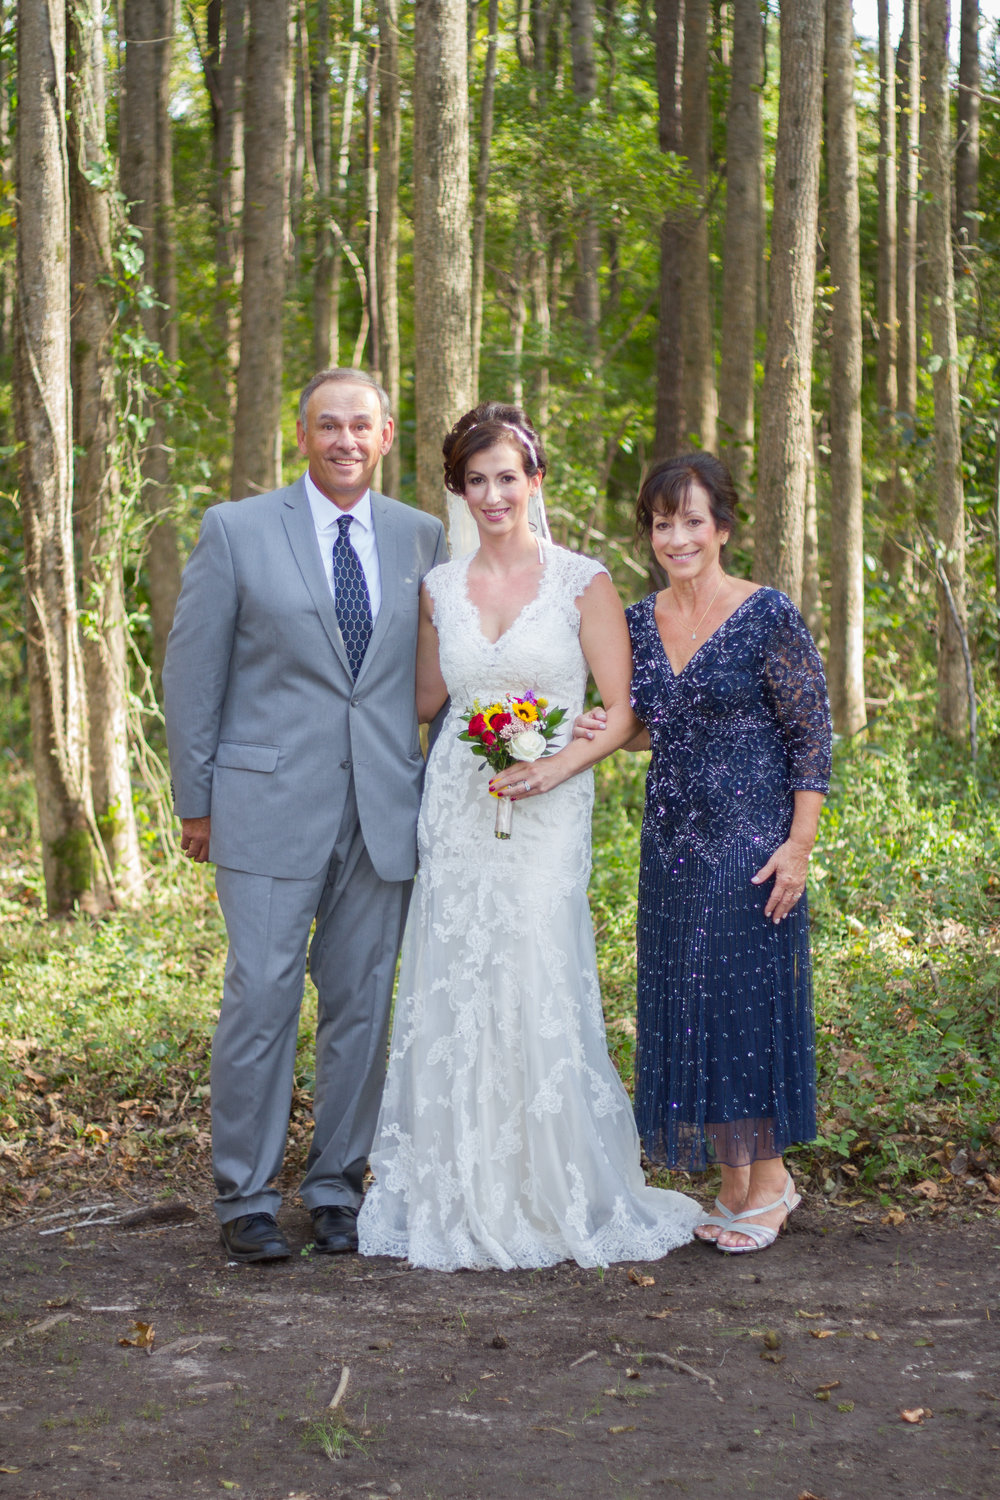 Jacqueline and Shawn Wedding (250 of 597).jpg